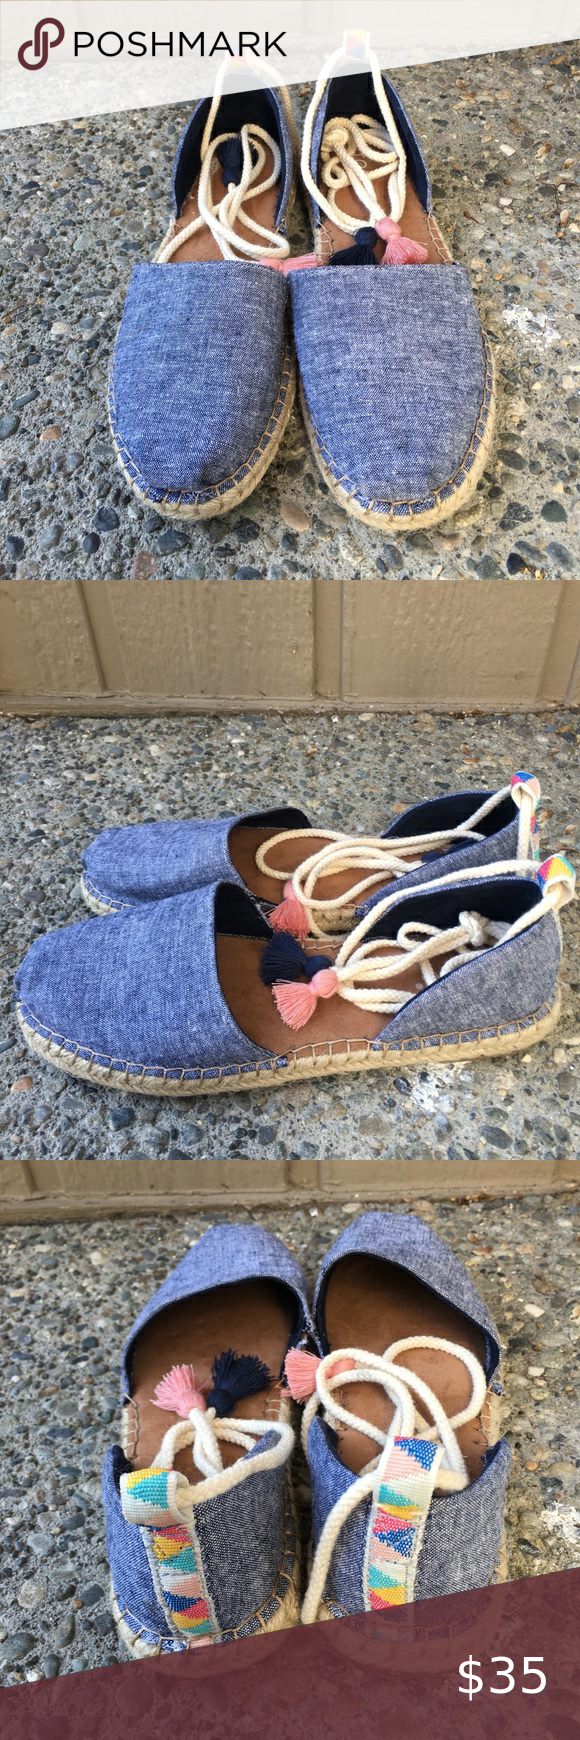 Spotted while shopping on Poshmark TOMS Chambray Denim Espadrilles Katalina 9 Laces